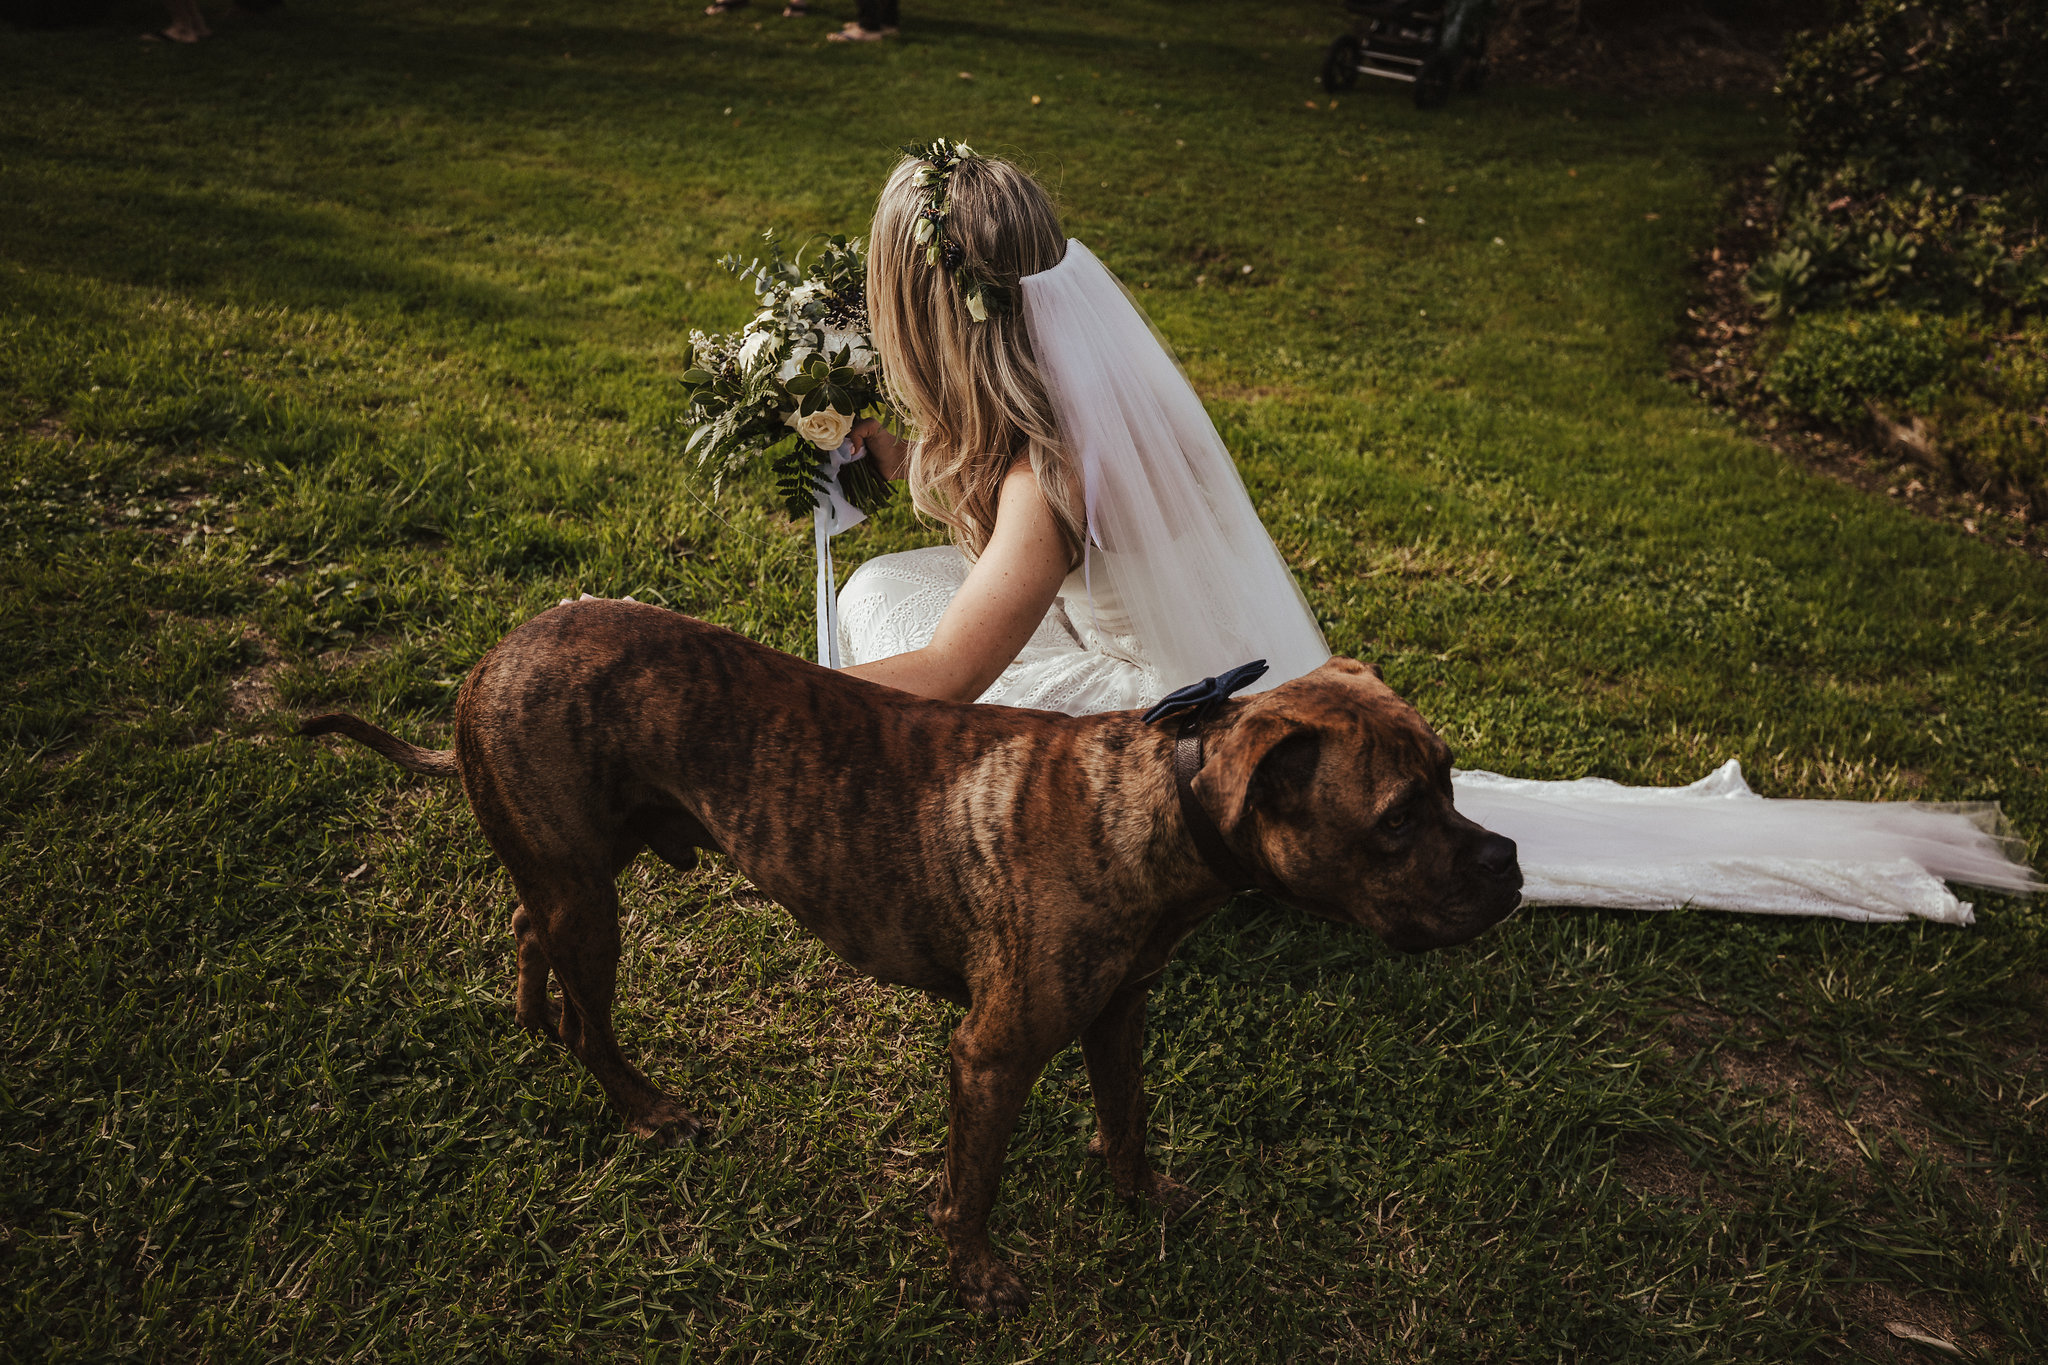 Categories: Weddings-Real Wedding: Gray & Bronté - Photography by Ralph Bella